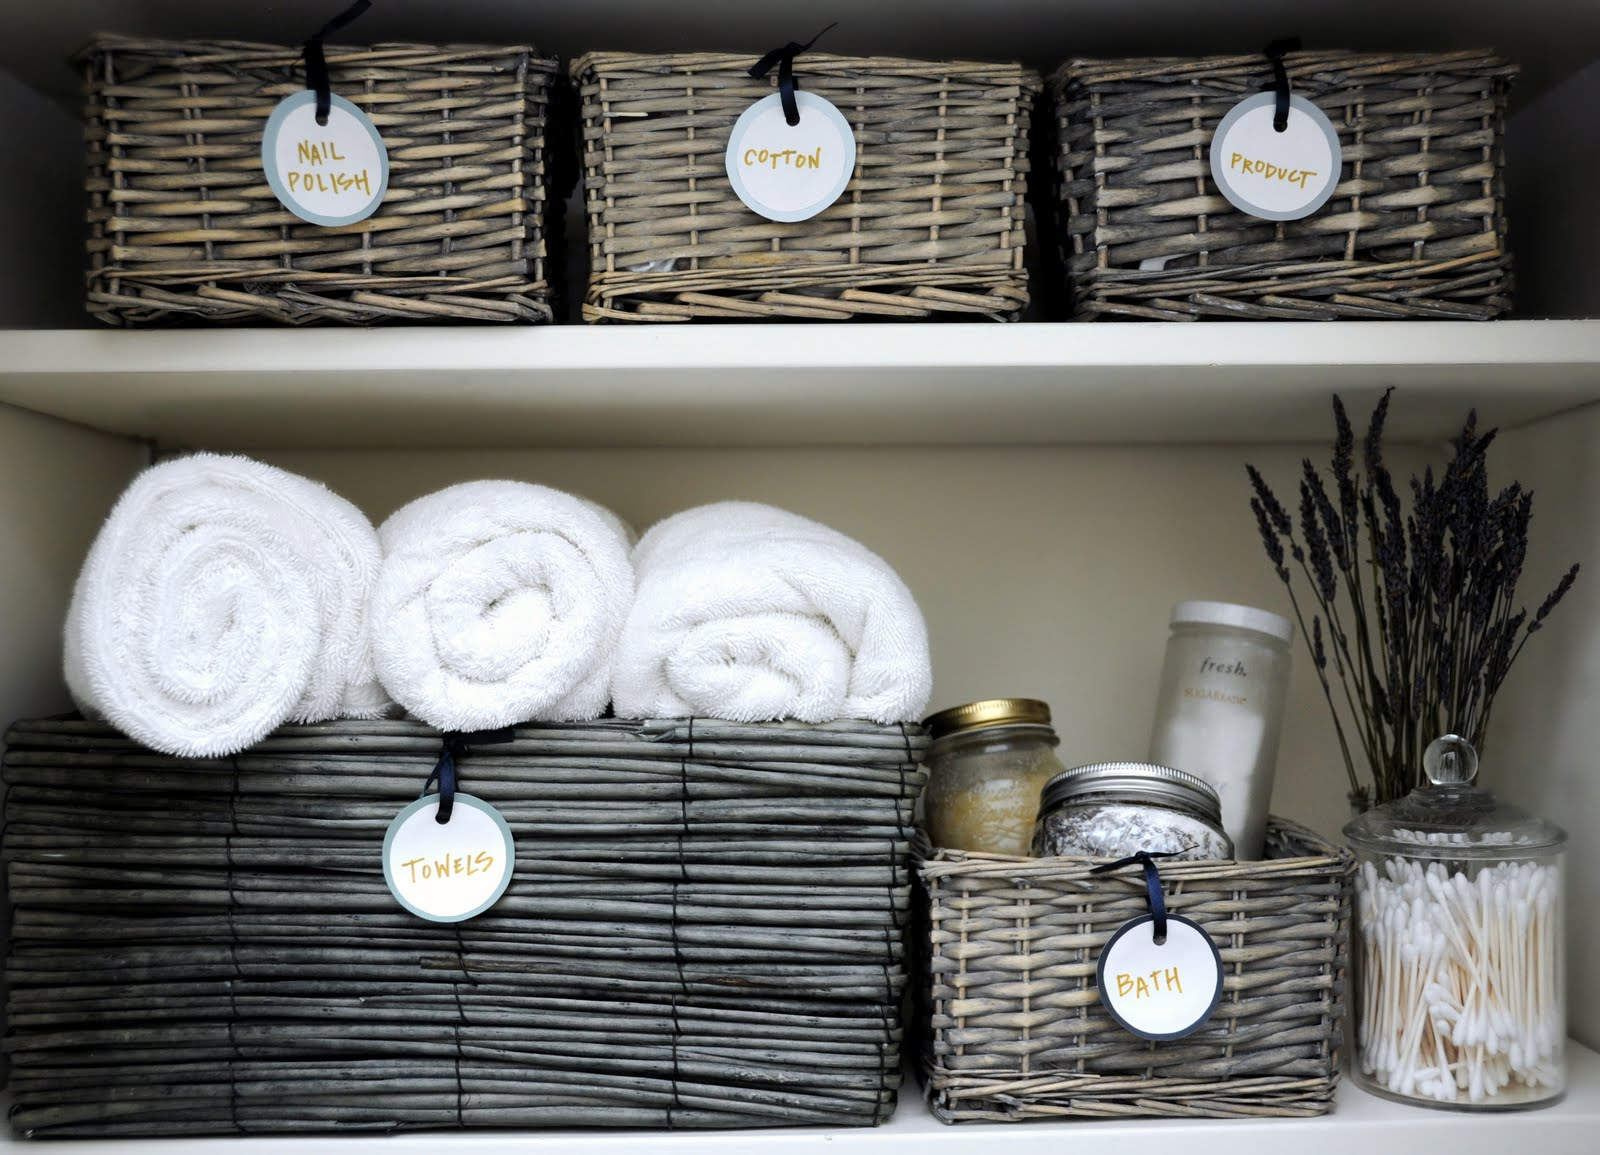 Deliciously Organized Organizing Linen Closet Diy Round Labels - Bathroom closet organization ideas